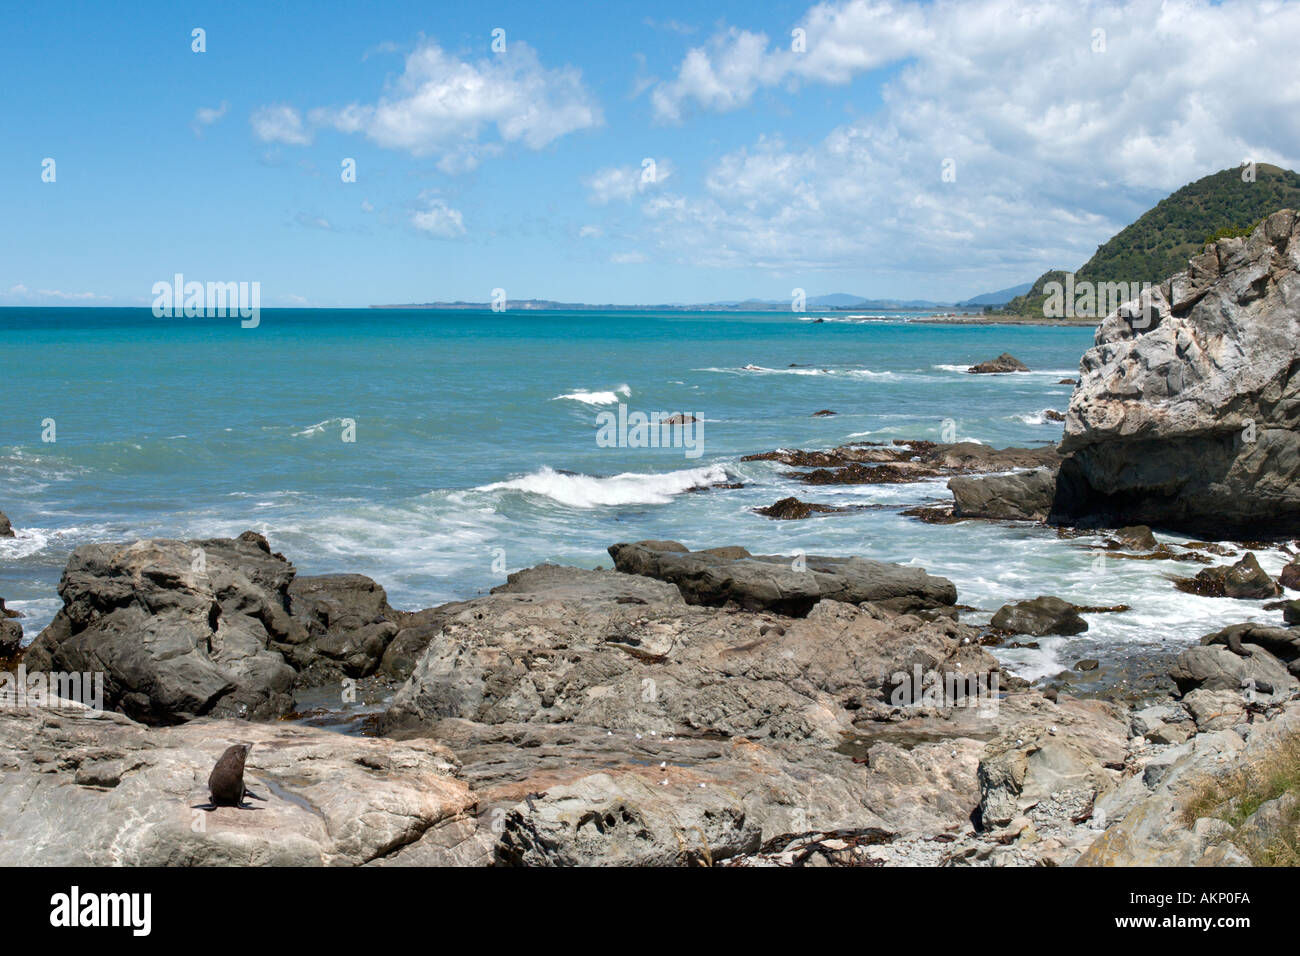 Seal Colony at Ohau Point on the coast off Highway SH1, north of Kaikoura, South Island, New Zealand - Stock Image